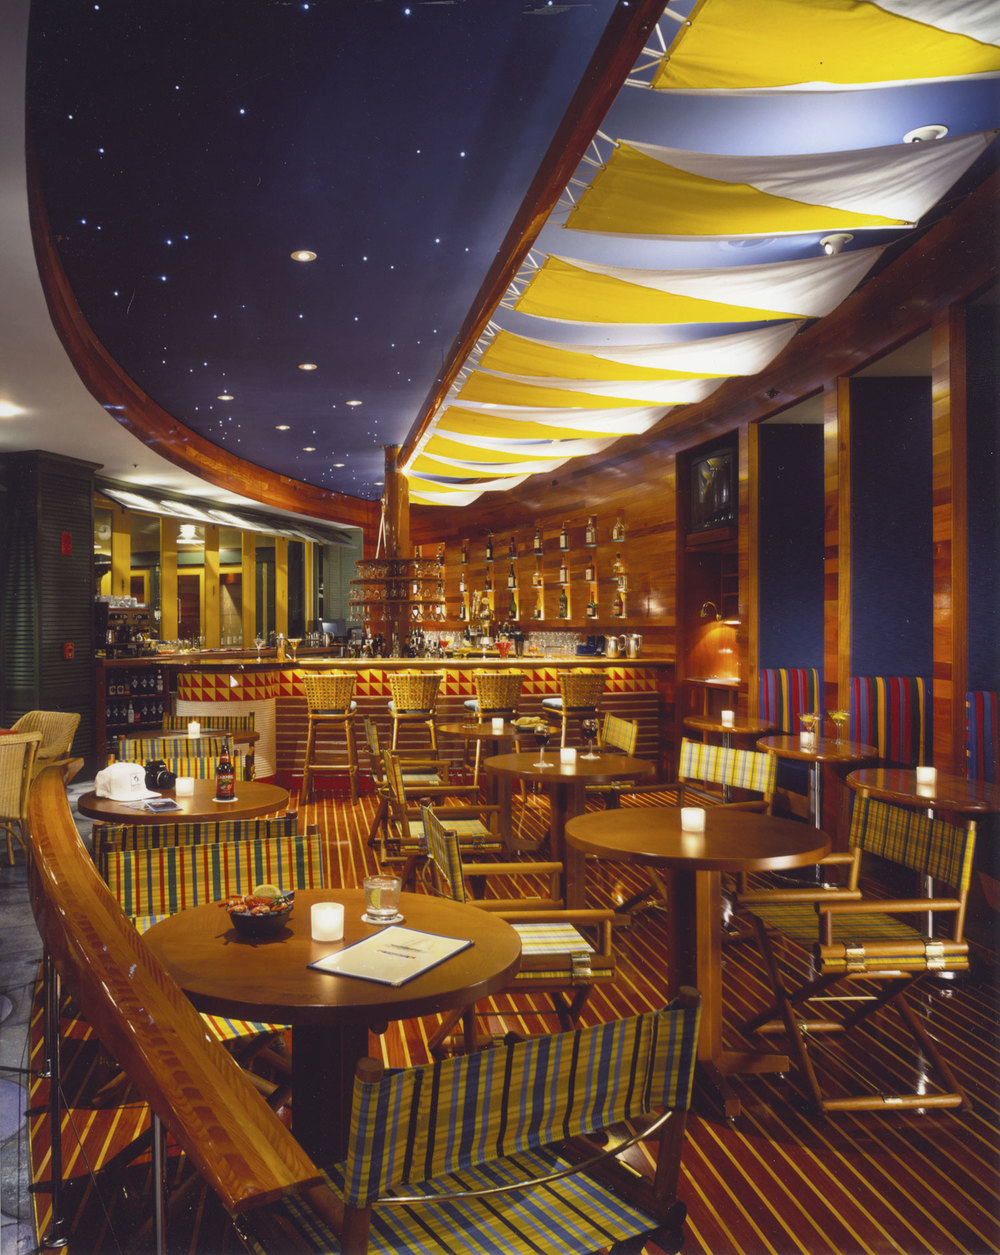 SCHOONERS BAR & BISTRO  work completed for former employer     Architect: Brayton & Hughes Design Studio  Project Designer: Timothy Gemmill  Project Type: Bar & Bistro, Monterey Plaza Hotel  Year of Completion: 1996